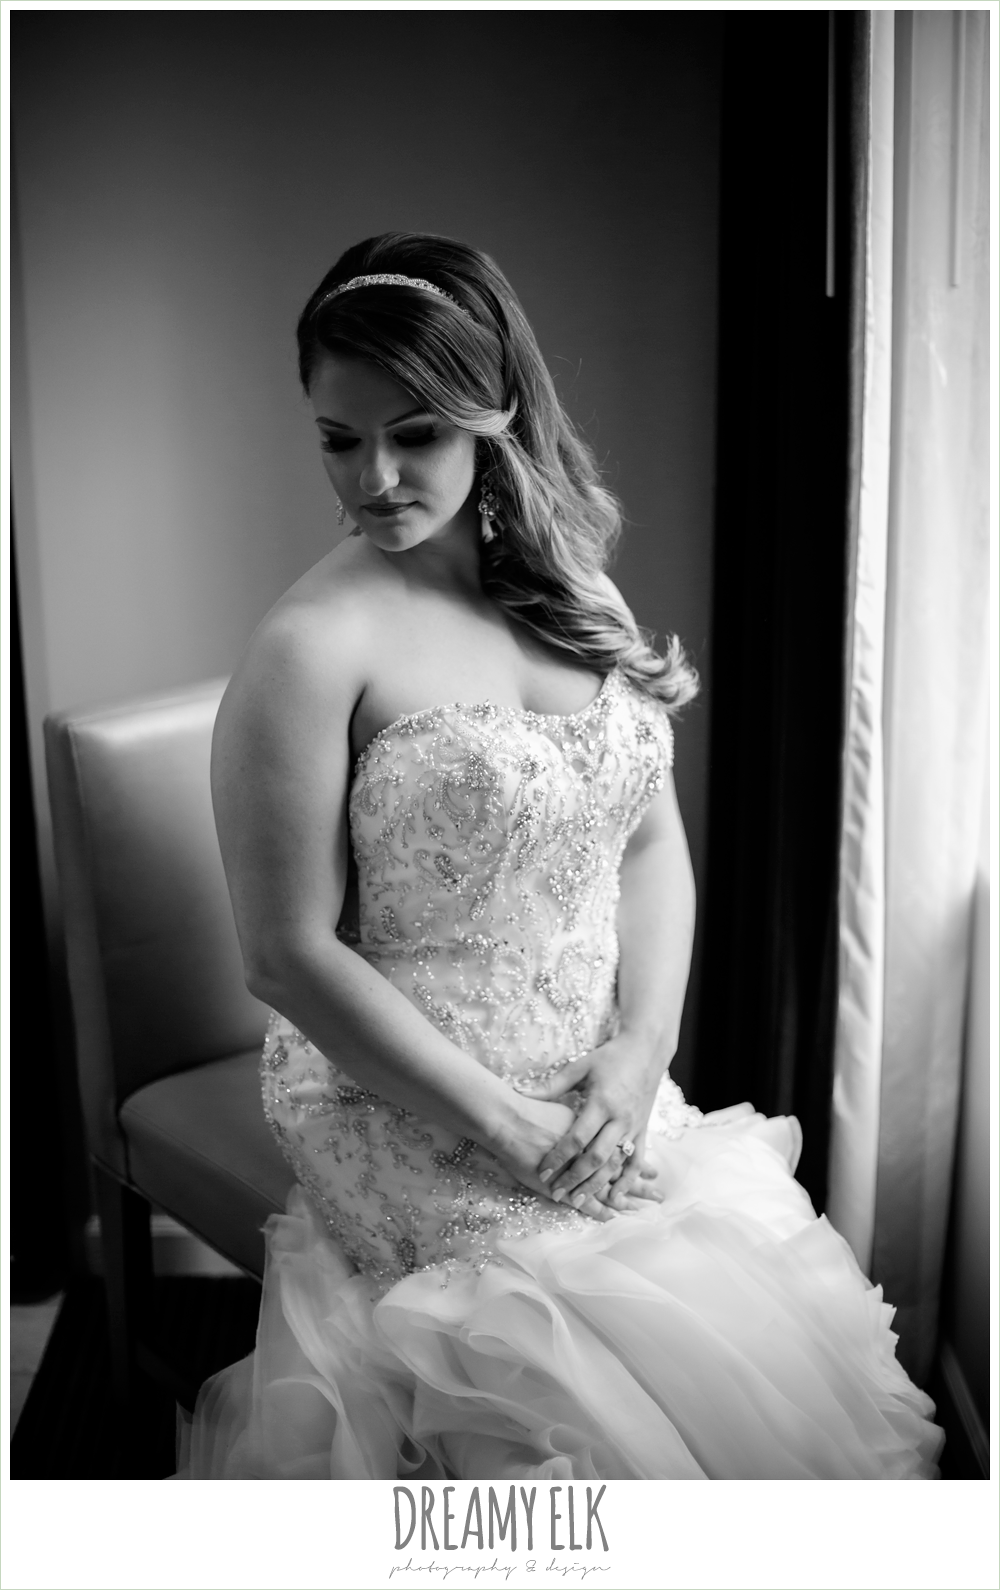 illusion back, sweetheart strapless mermaid wedding dress, wedding hair down over one shoulder, bride sitting in chair by window, spring wedding, magnolia hotel, houston, texas {dreamy elk photography and design}